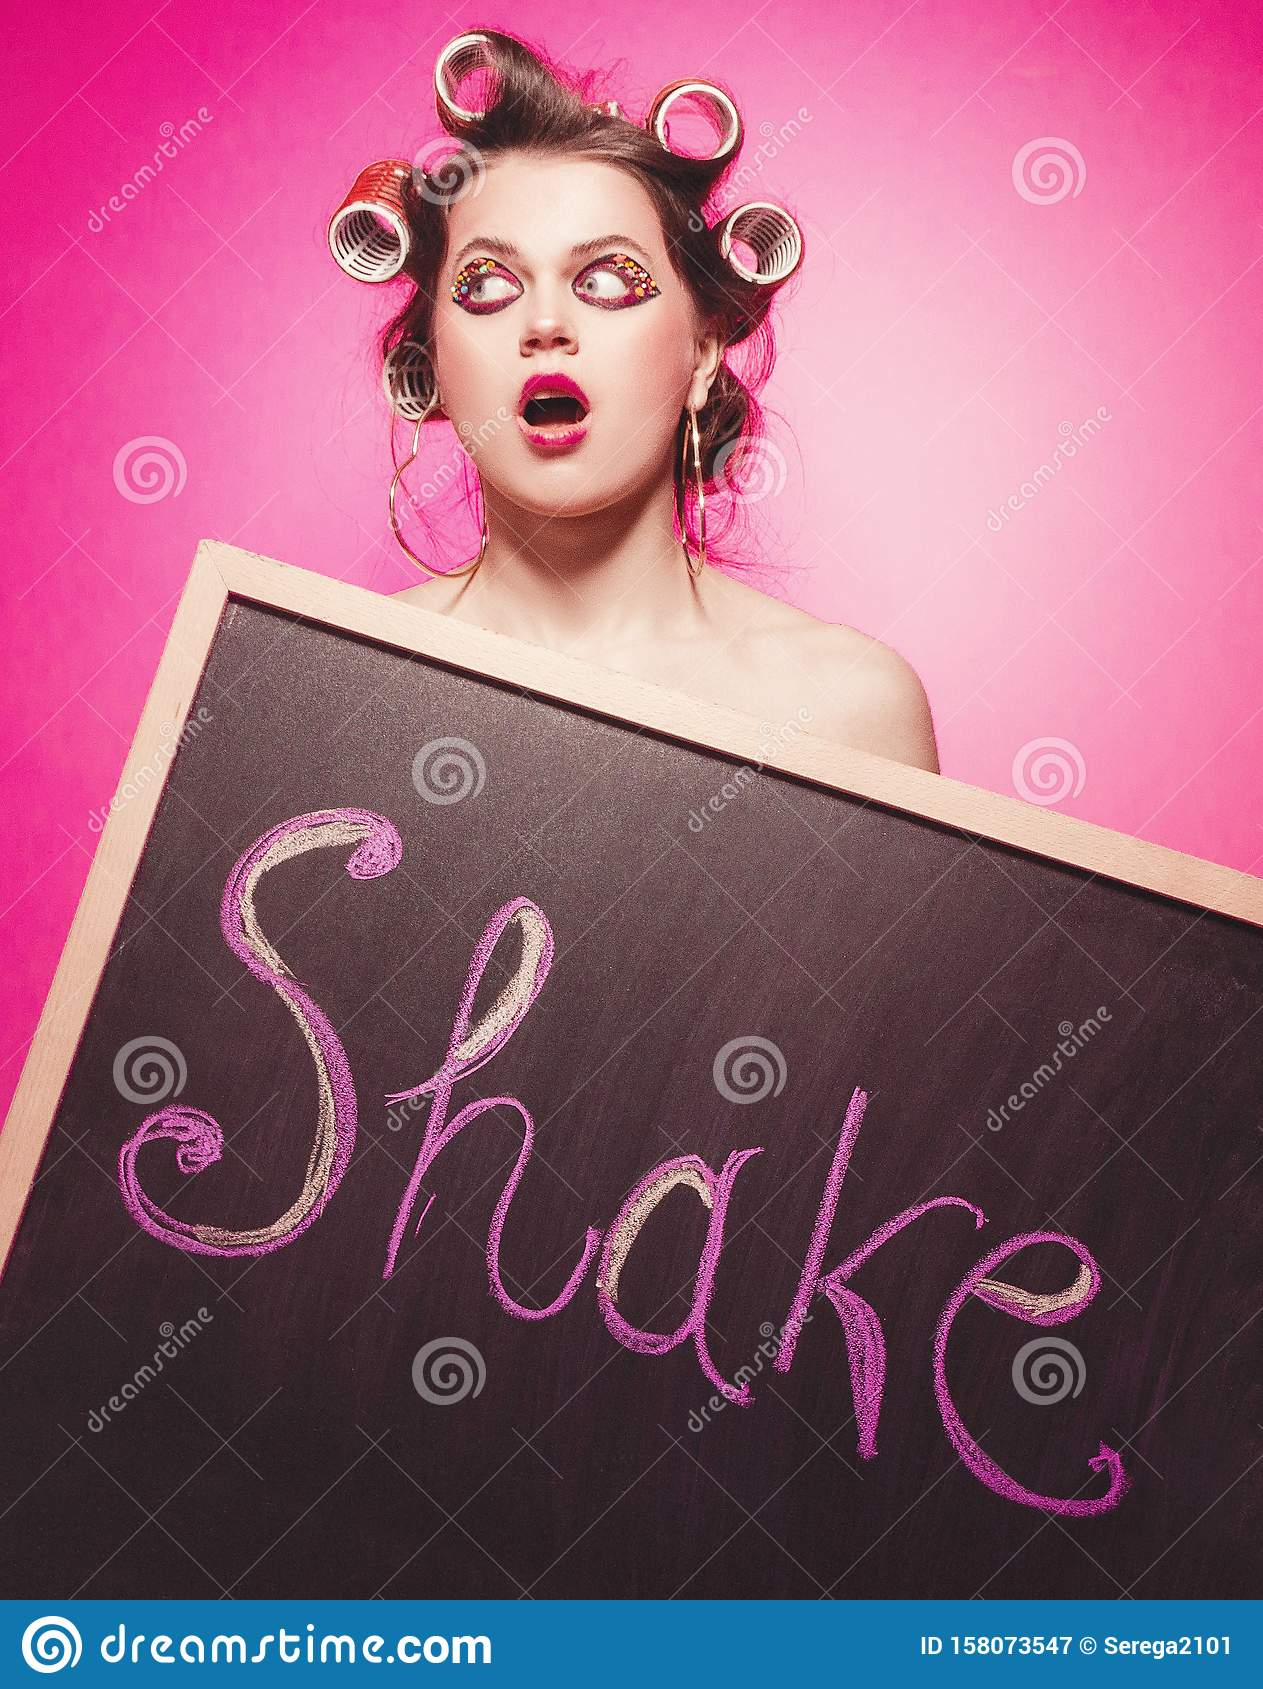 Naked girl text pics Cheeky Naked Girl Cover Her Self With Board And Text Stock Image Image Of Black Card 158073547